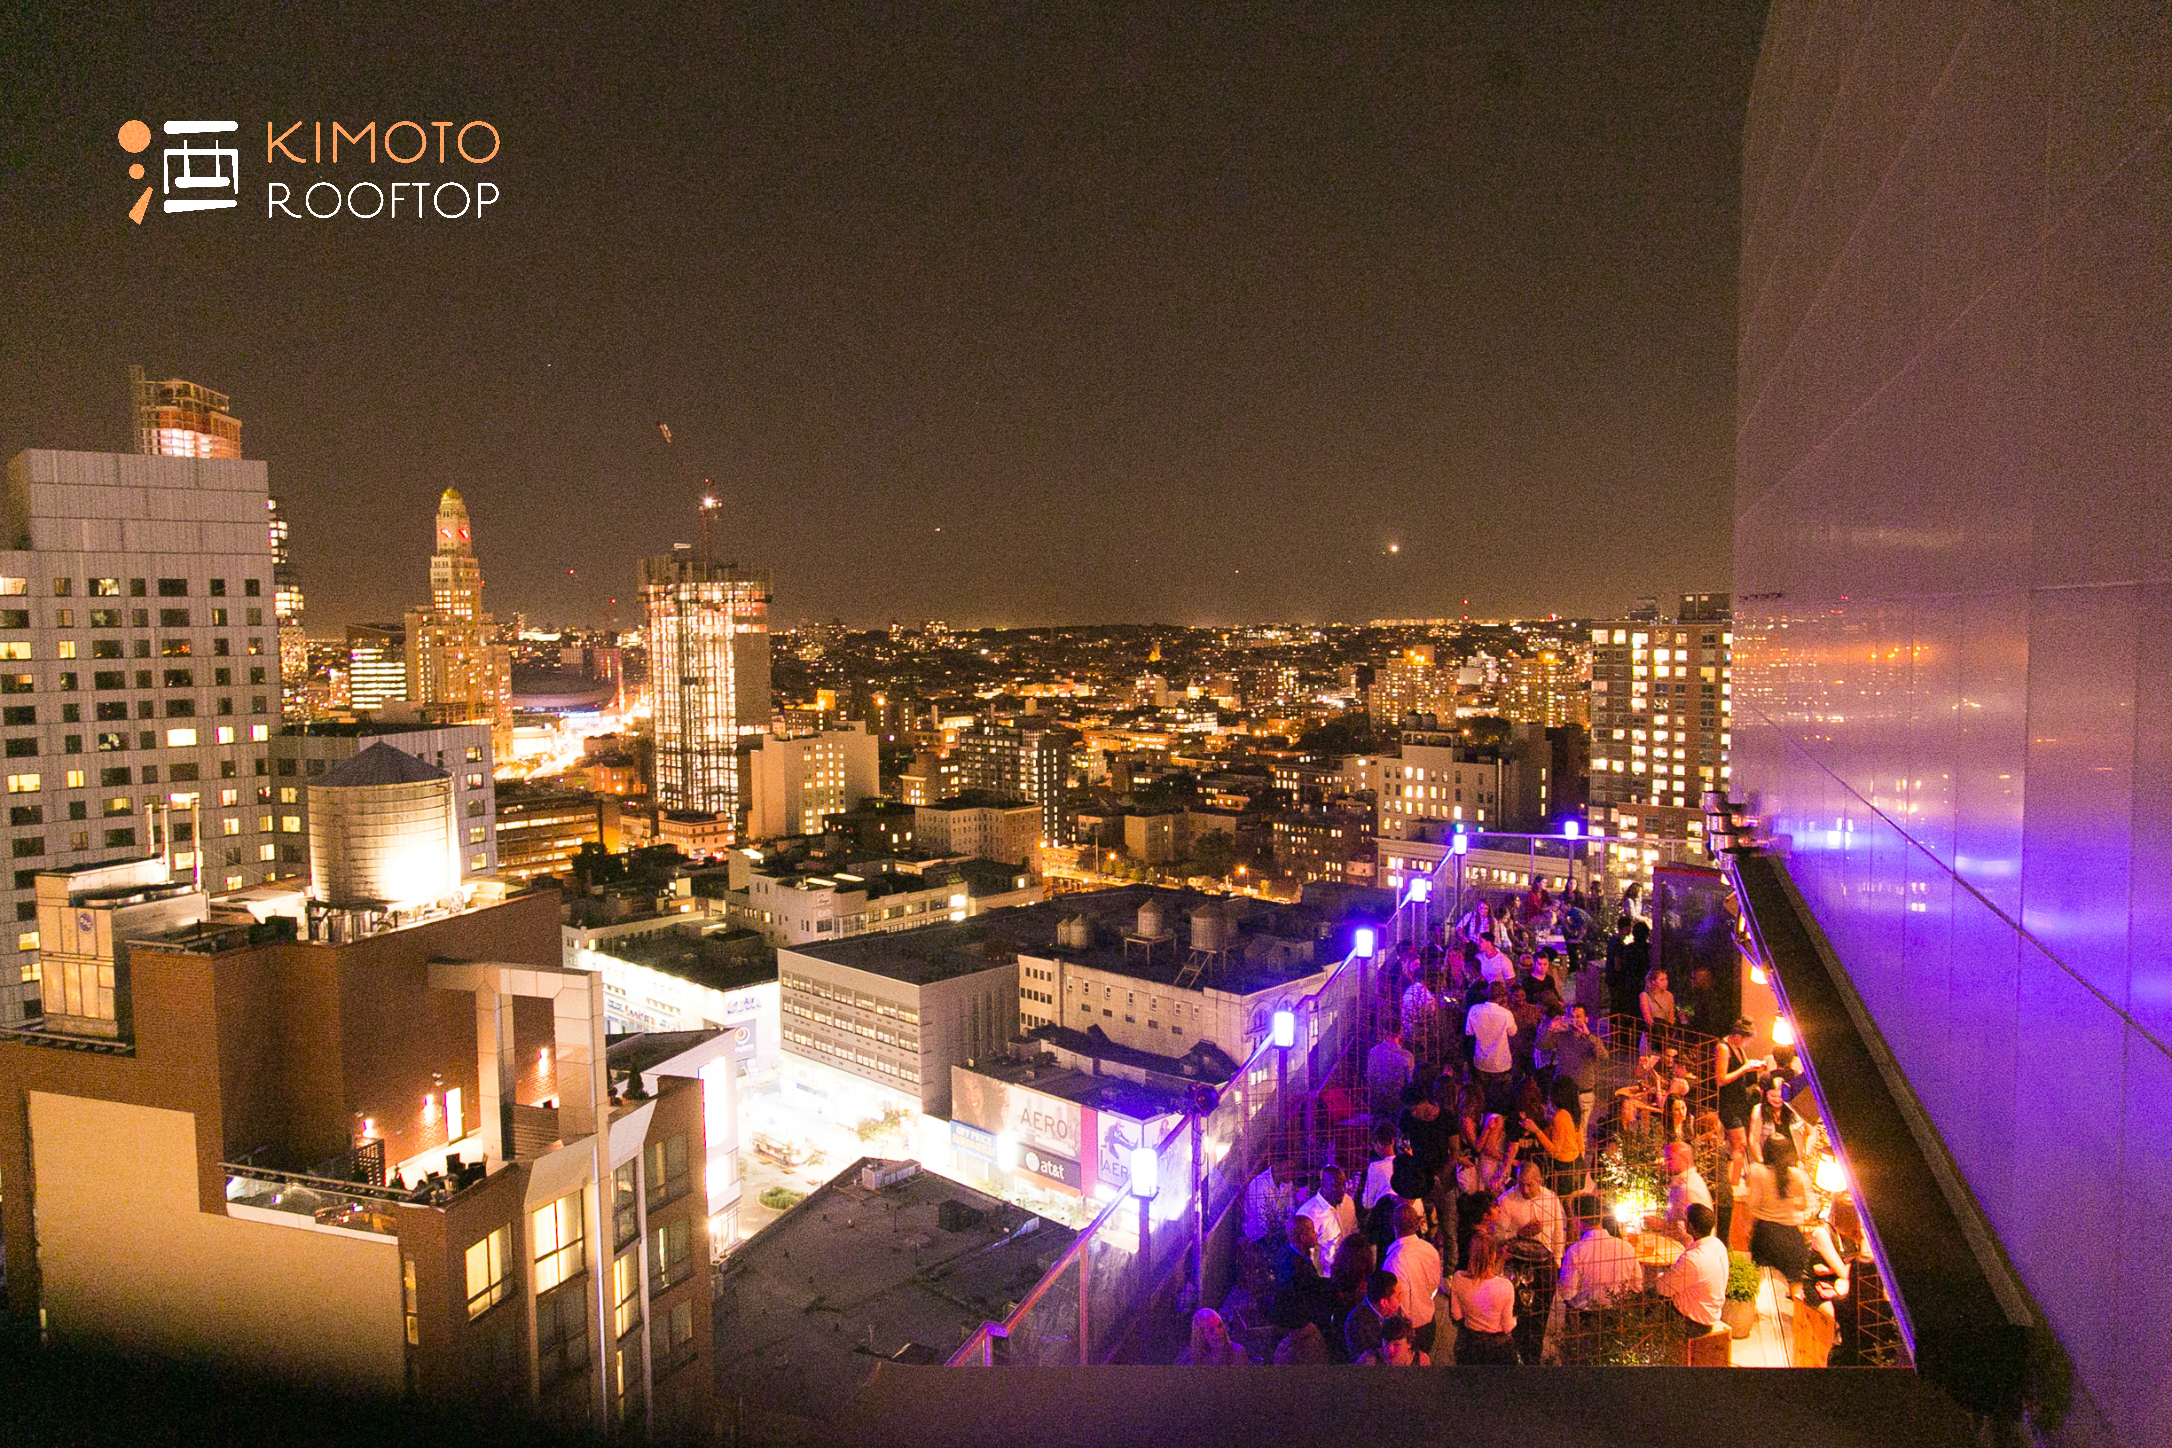 Kimoto Full Buyout event space at Kimoto Rooftop in New York City, NYC, NY/NJ Area